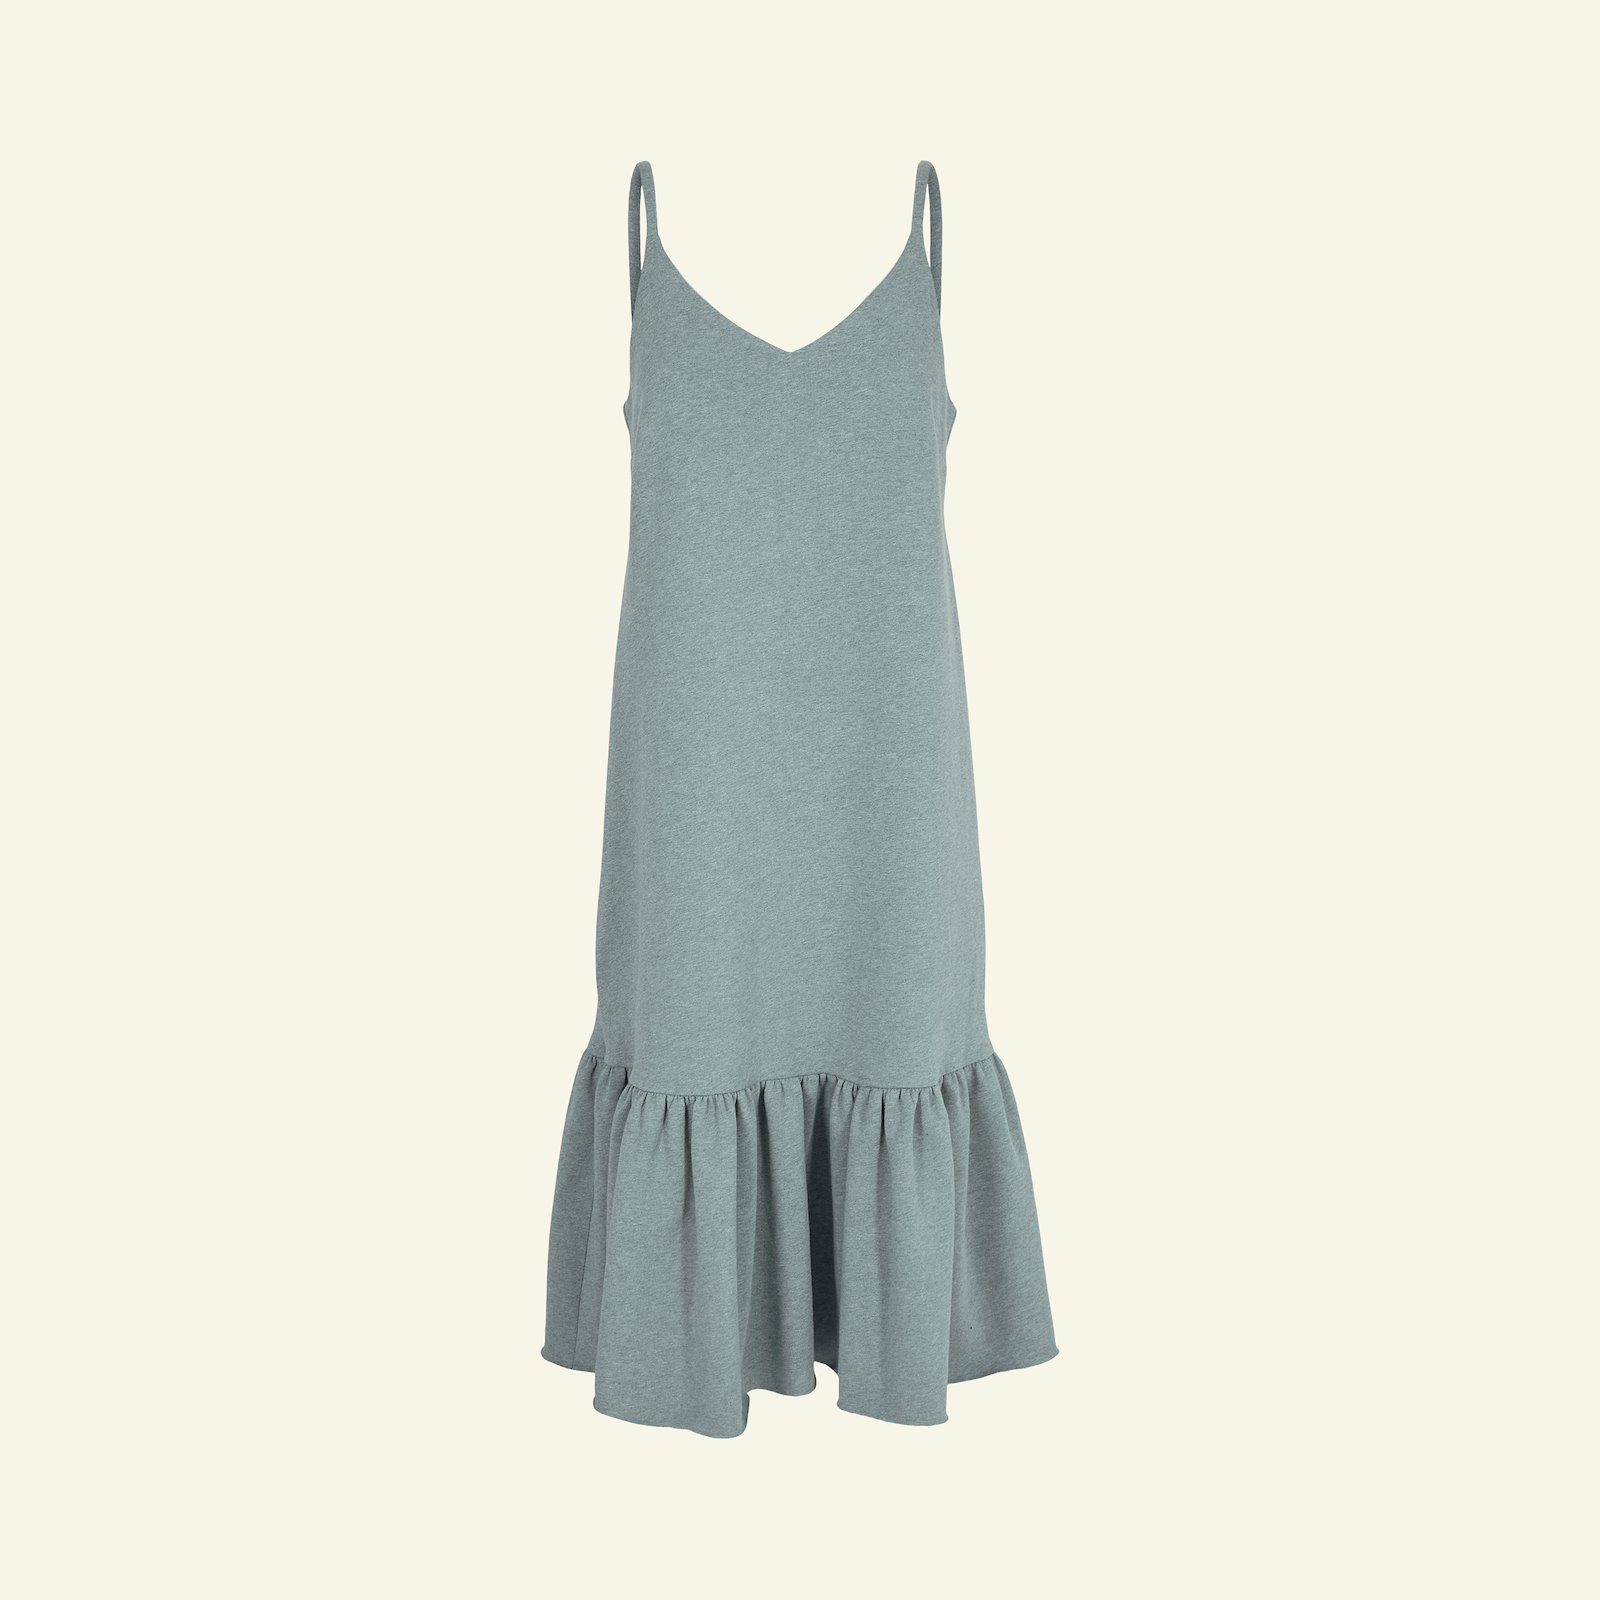 Strap dress and top, 46/18 p23146_211764_sskit